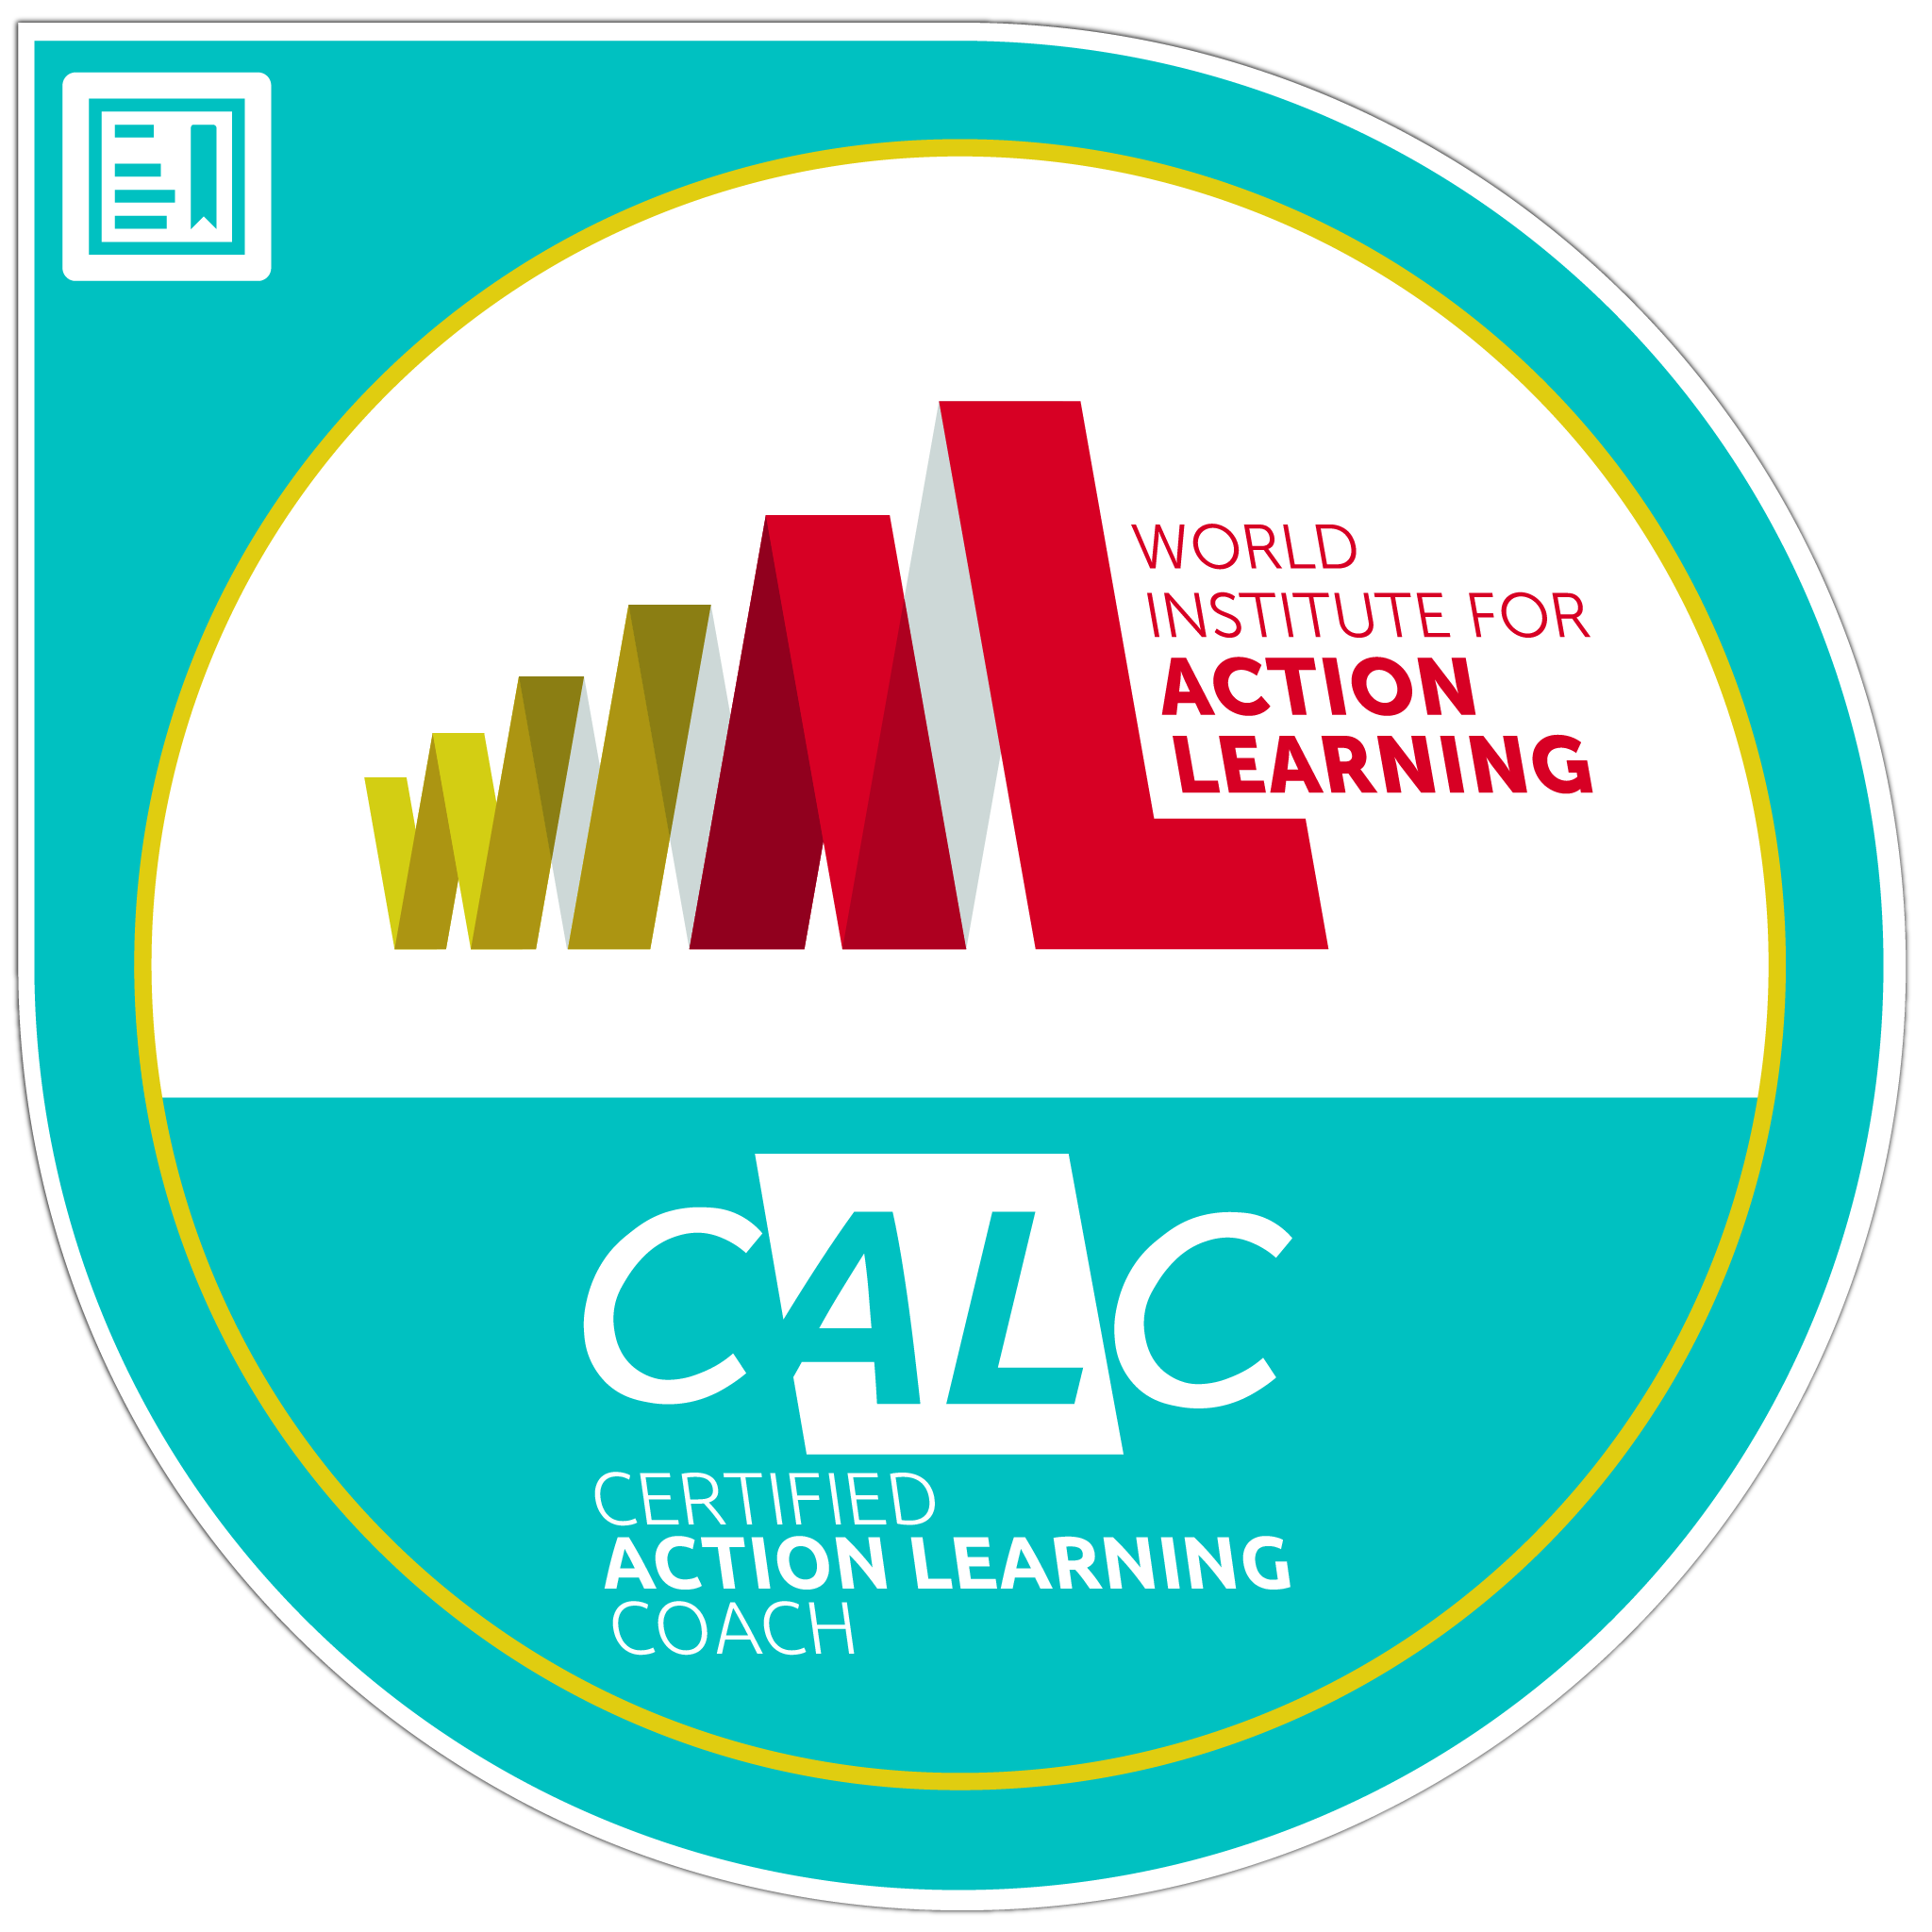 WIAL Certified Action Learning Coach